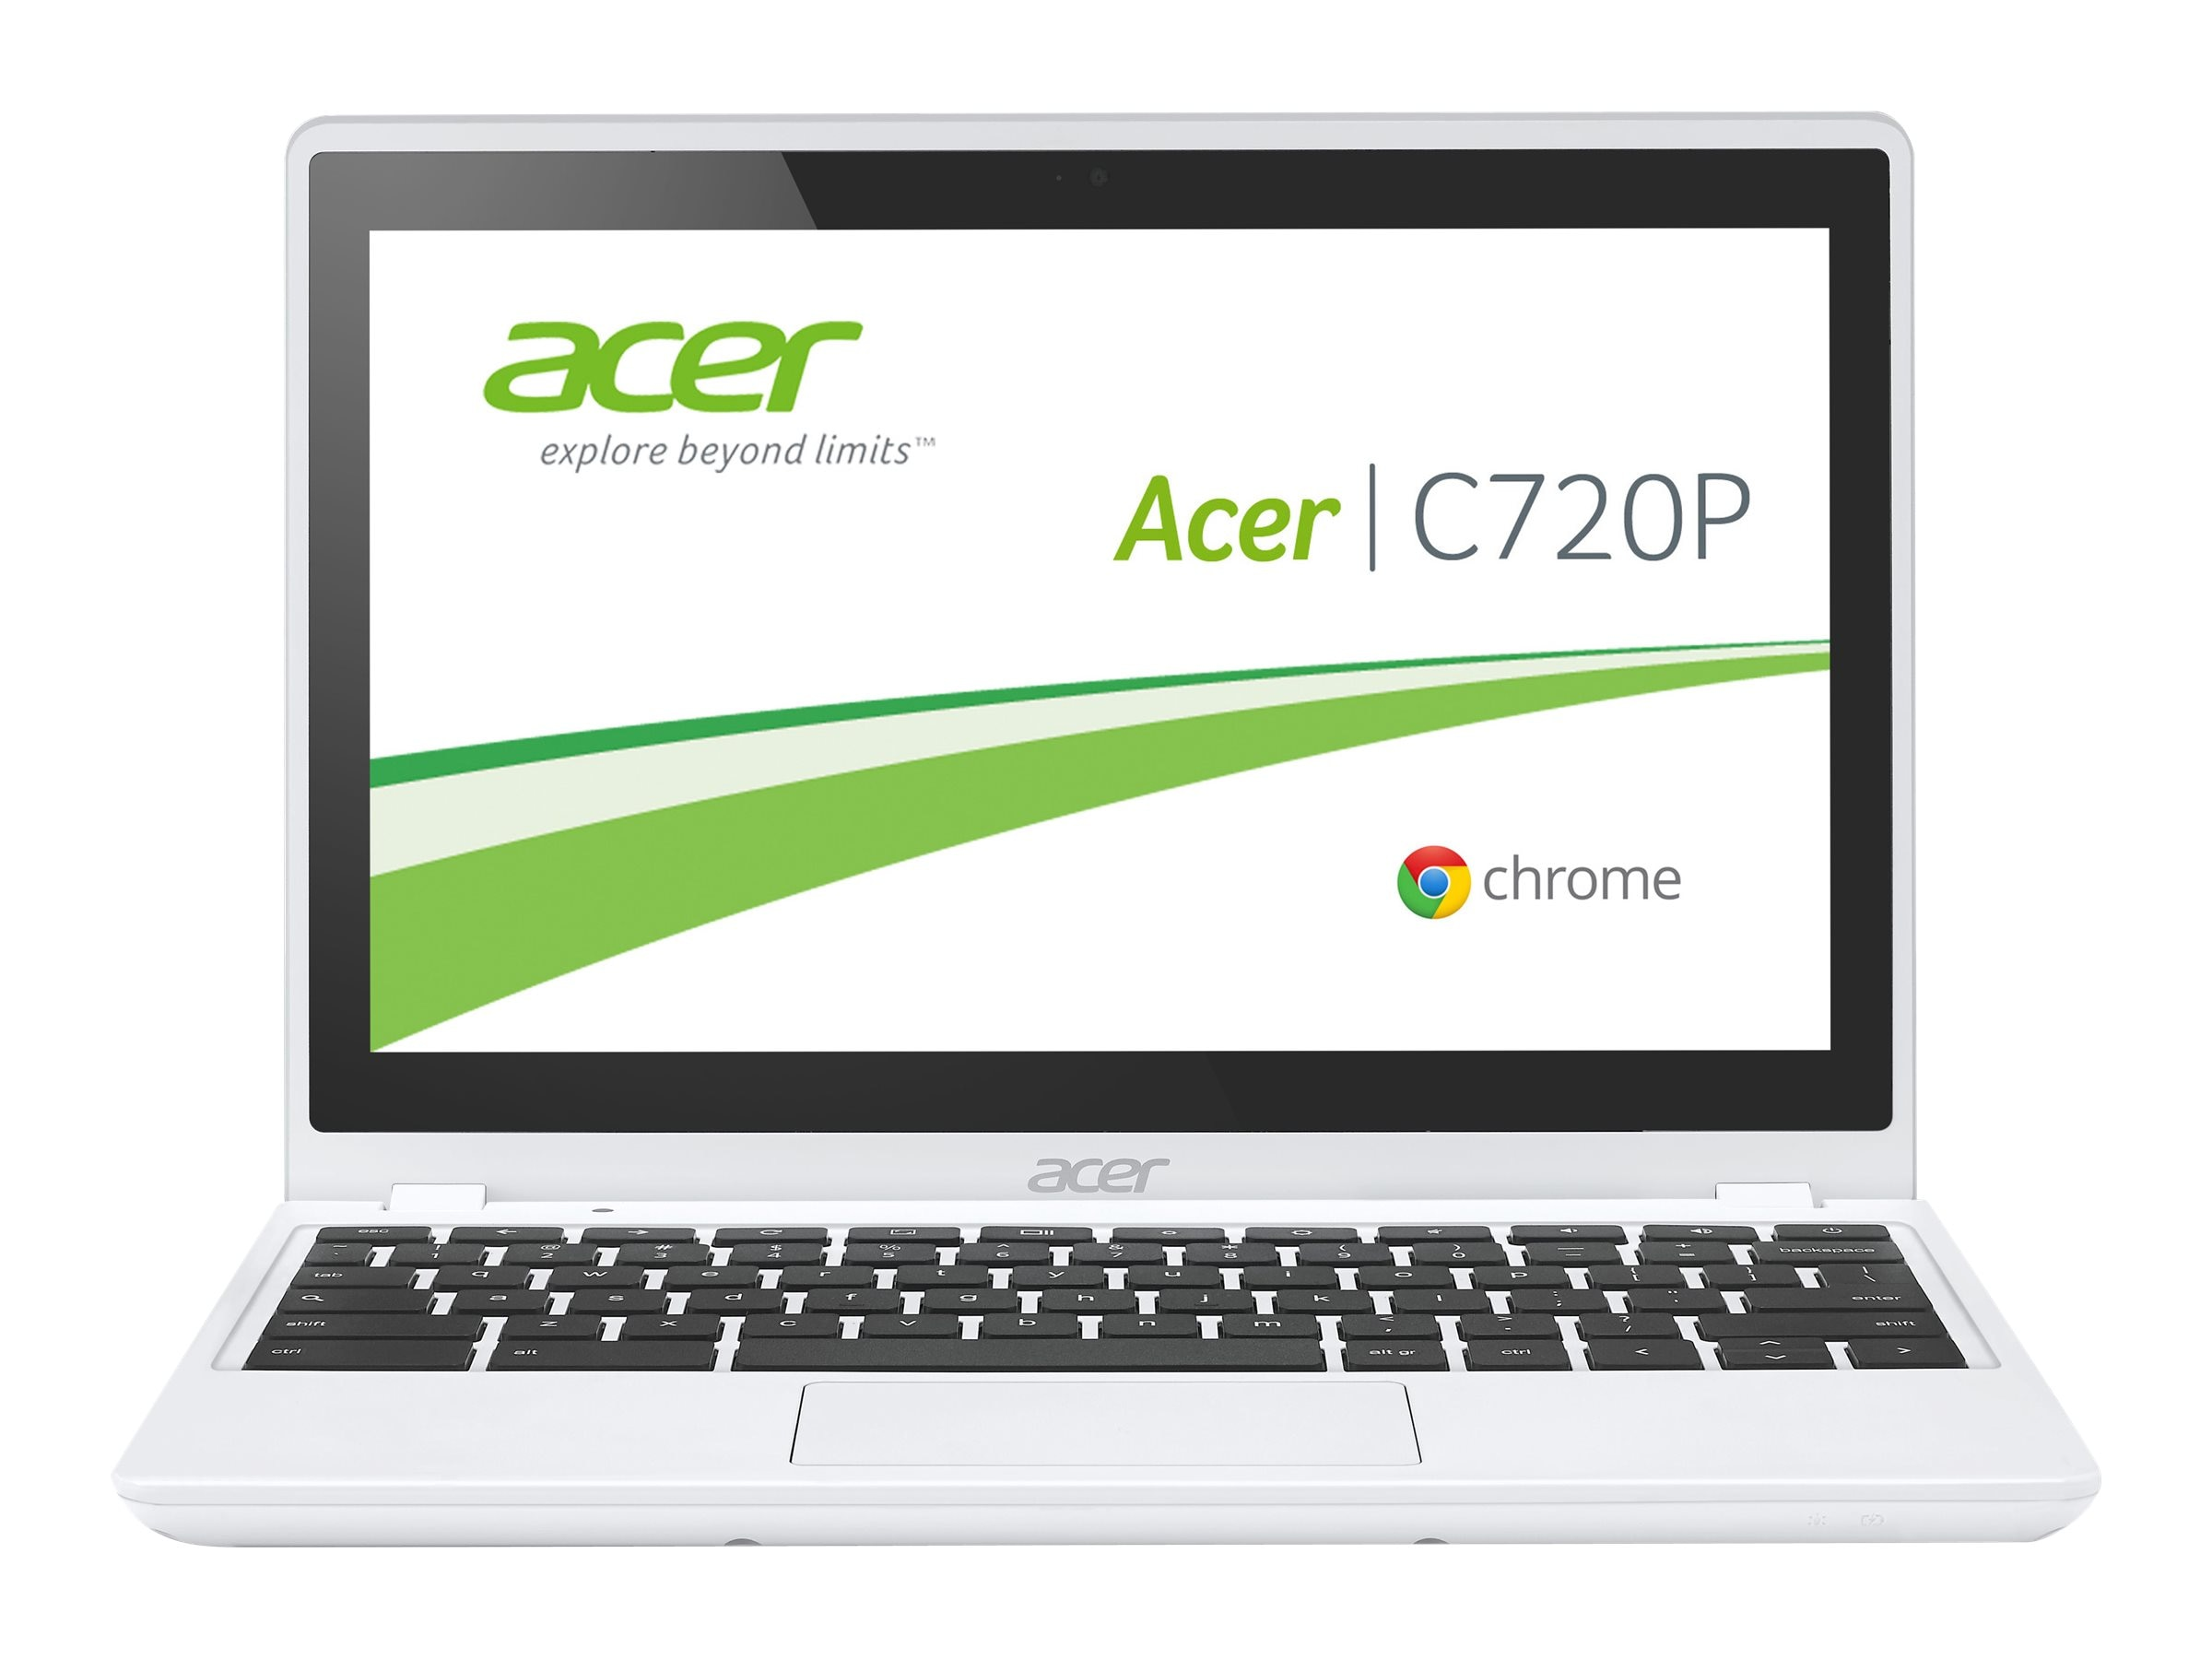 Acer Chromebook C720P-2457 1.4GHz Celeron 11.6in display, NX.MKEAA.005